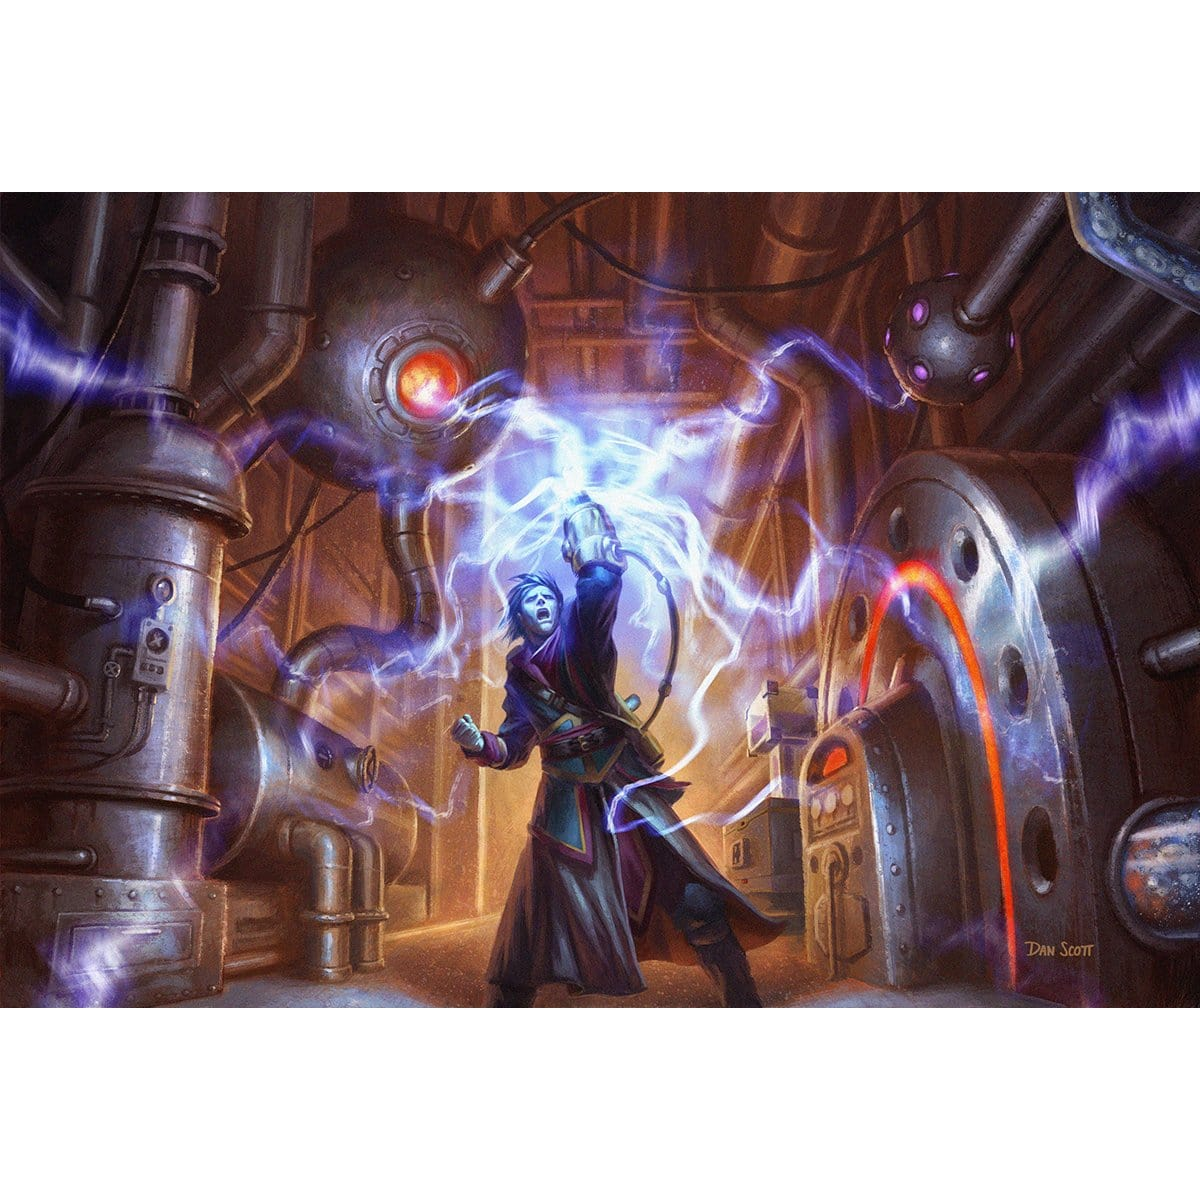 Epic Experiment Print - Print - Original Magic Art - Accessories for Magic the Gathering and other card games